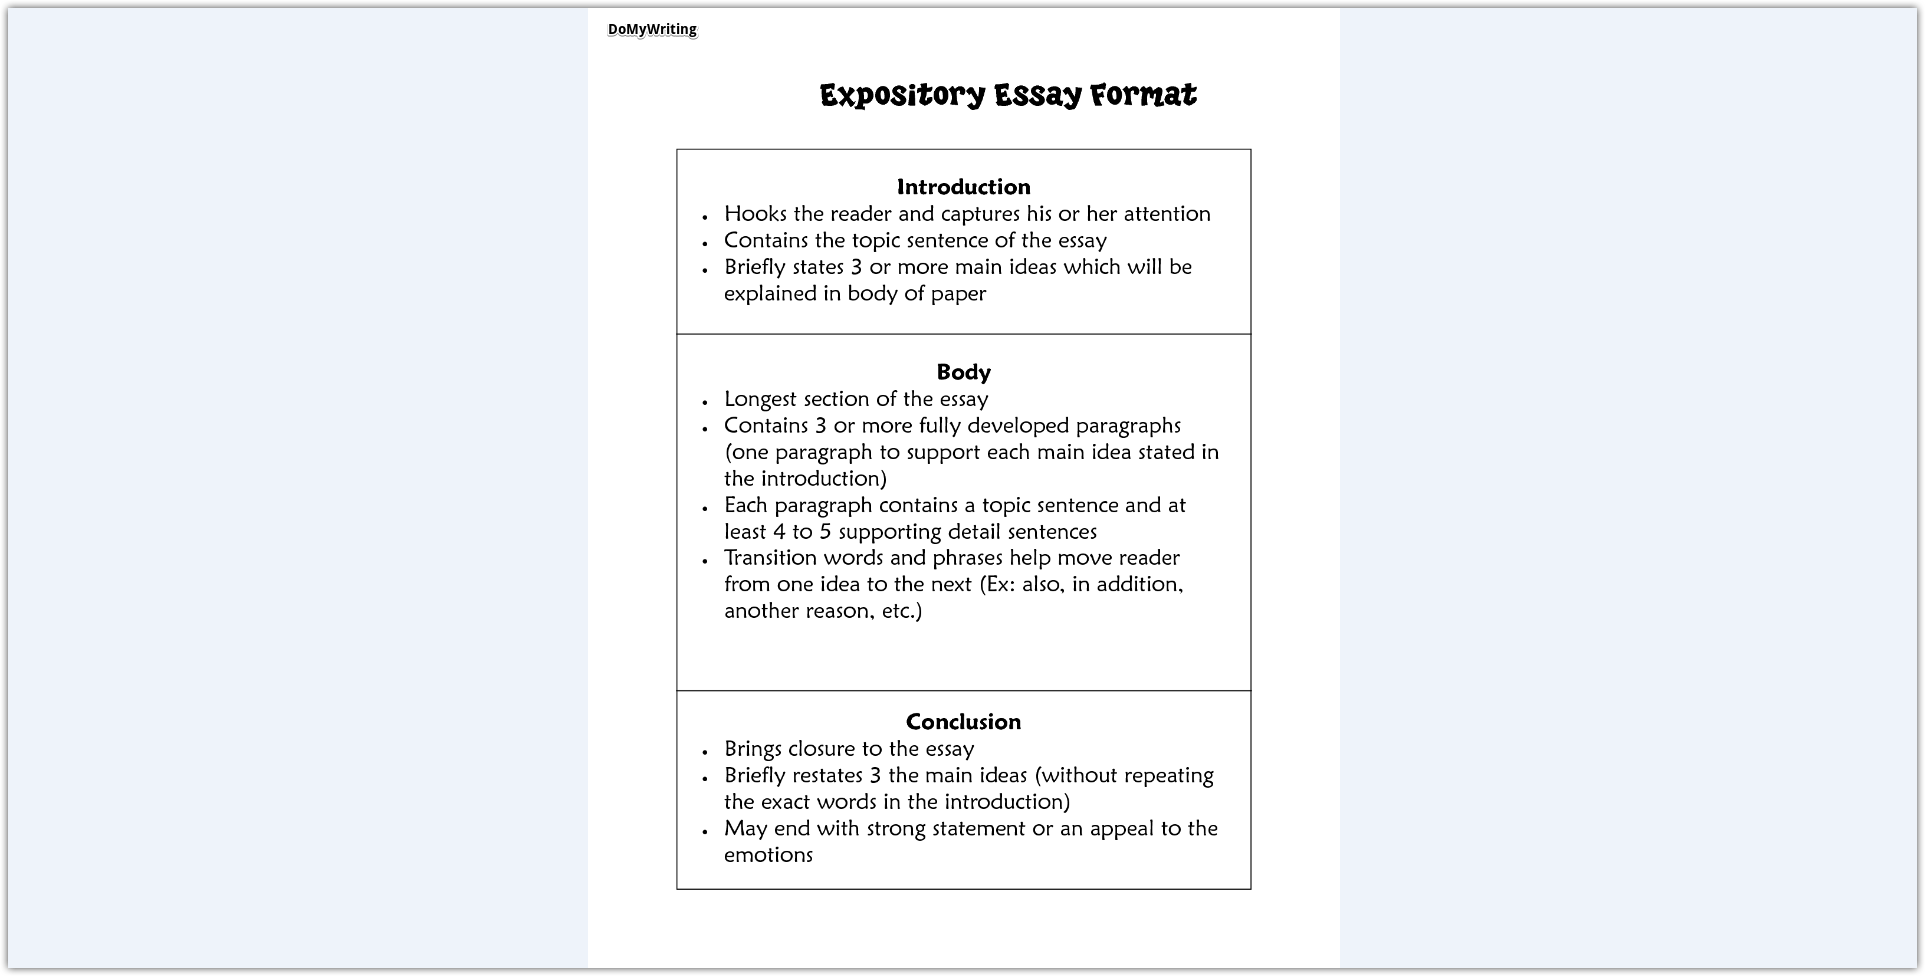 guide to write a winning expository essay